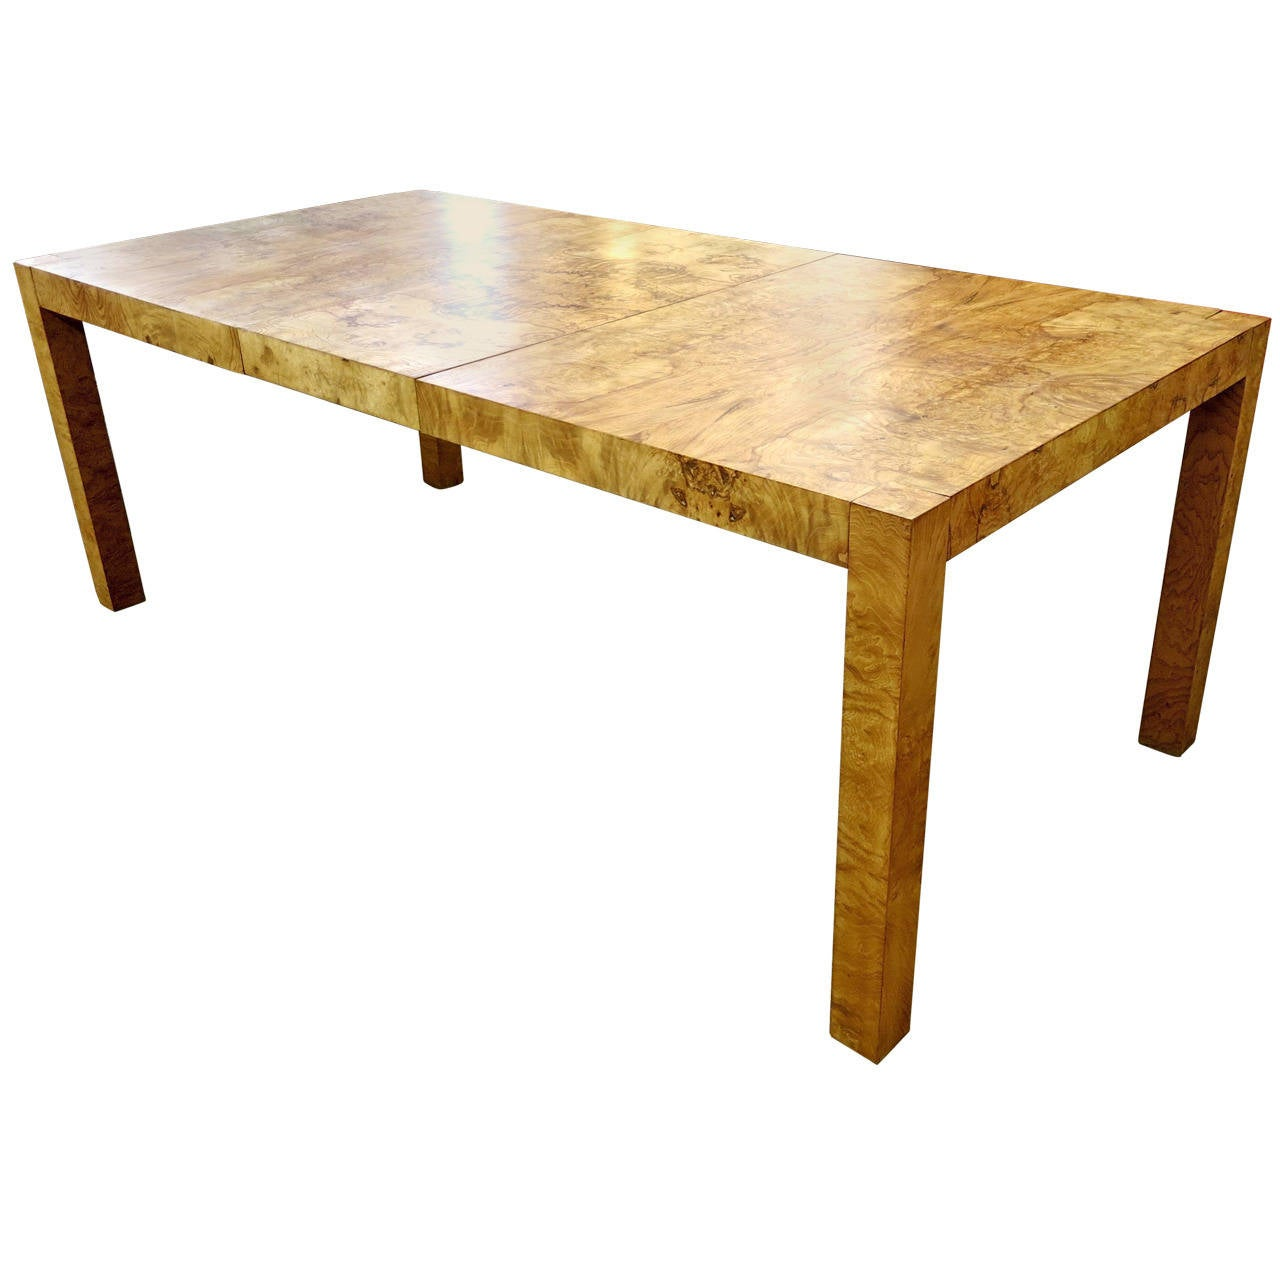 Burled wood or burl wood parsons style mid century modern for New style dining table